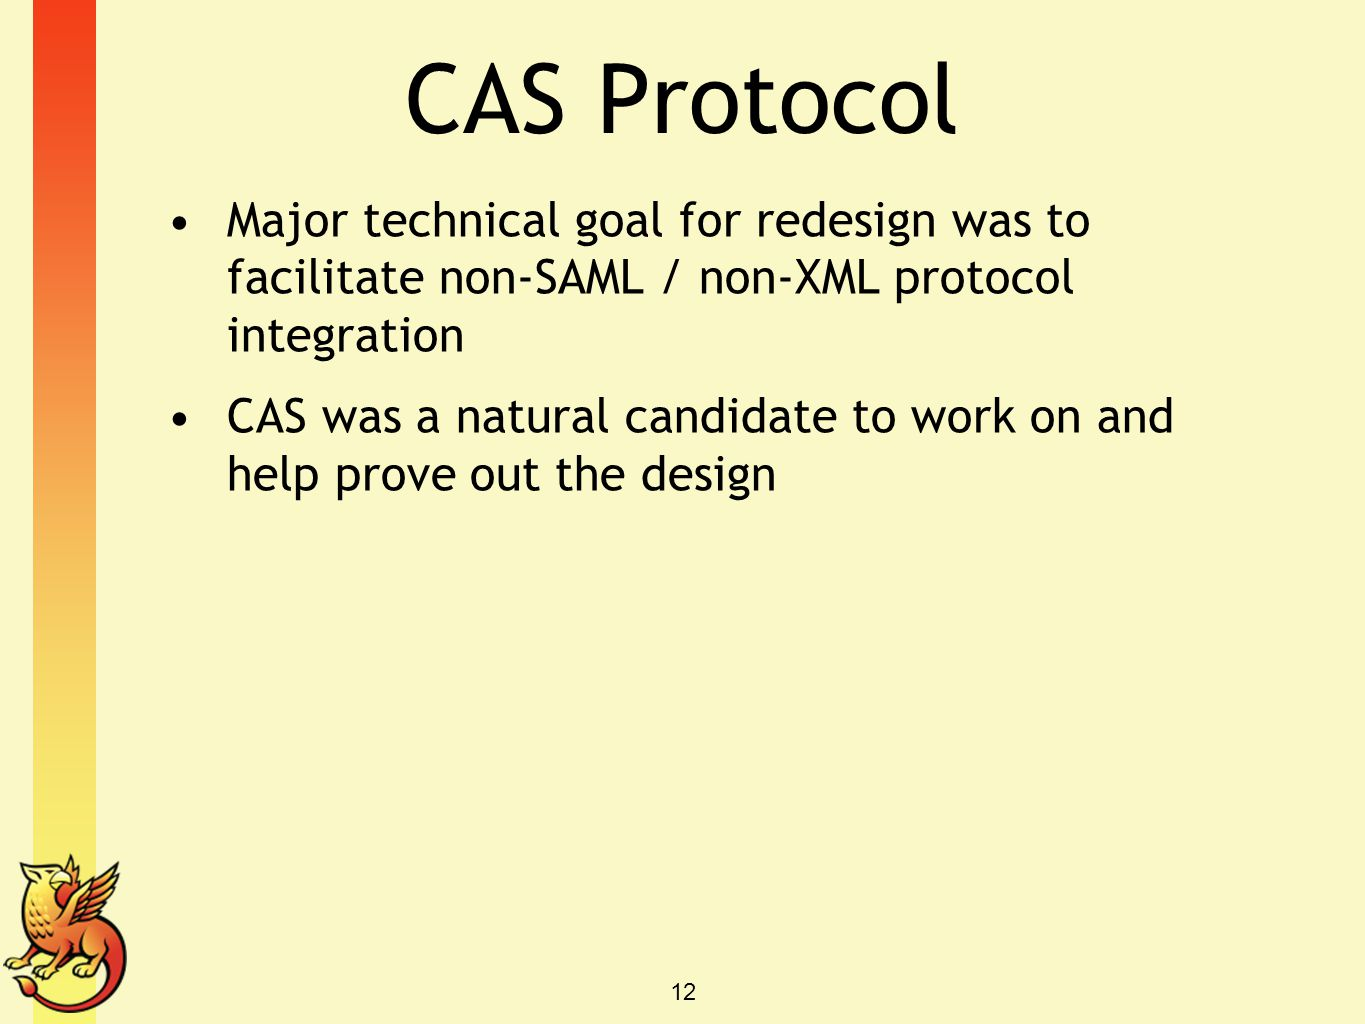 CAS Protocol Major technical goal for redesign was to facilitate non-SAML / non-XML protocol integration CAS was a natural candidate to work on and he